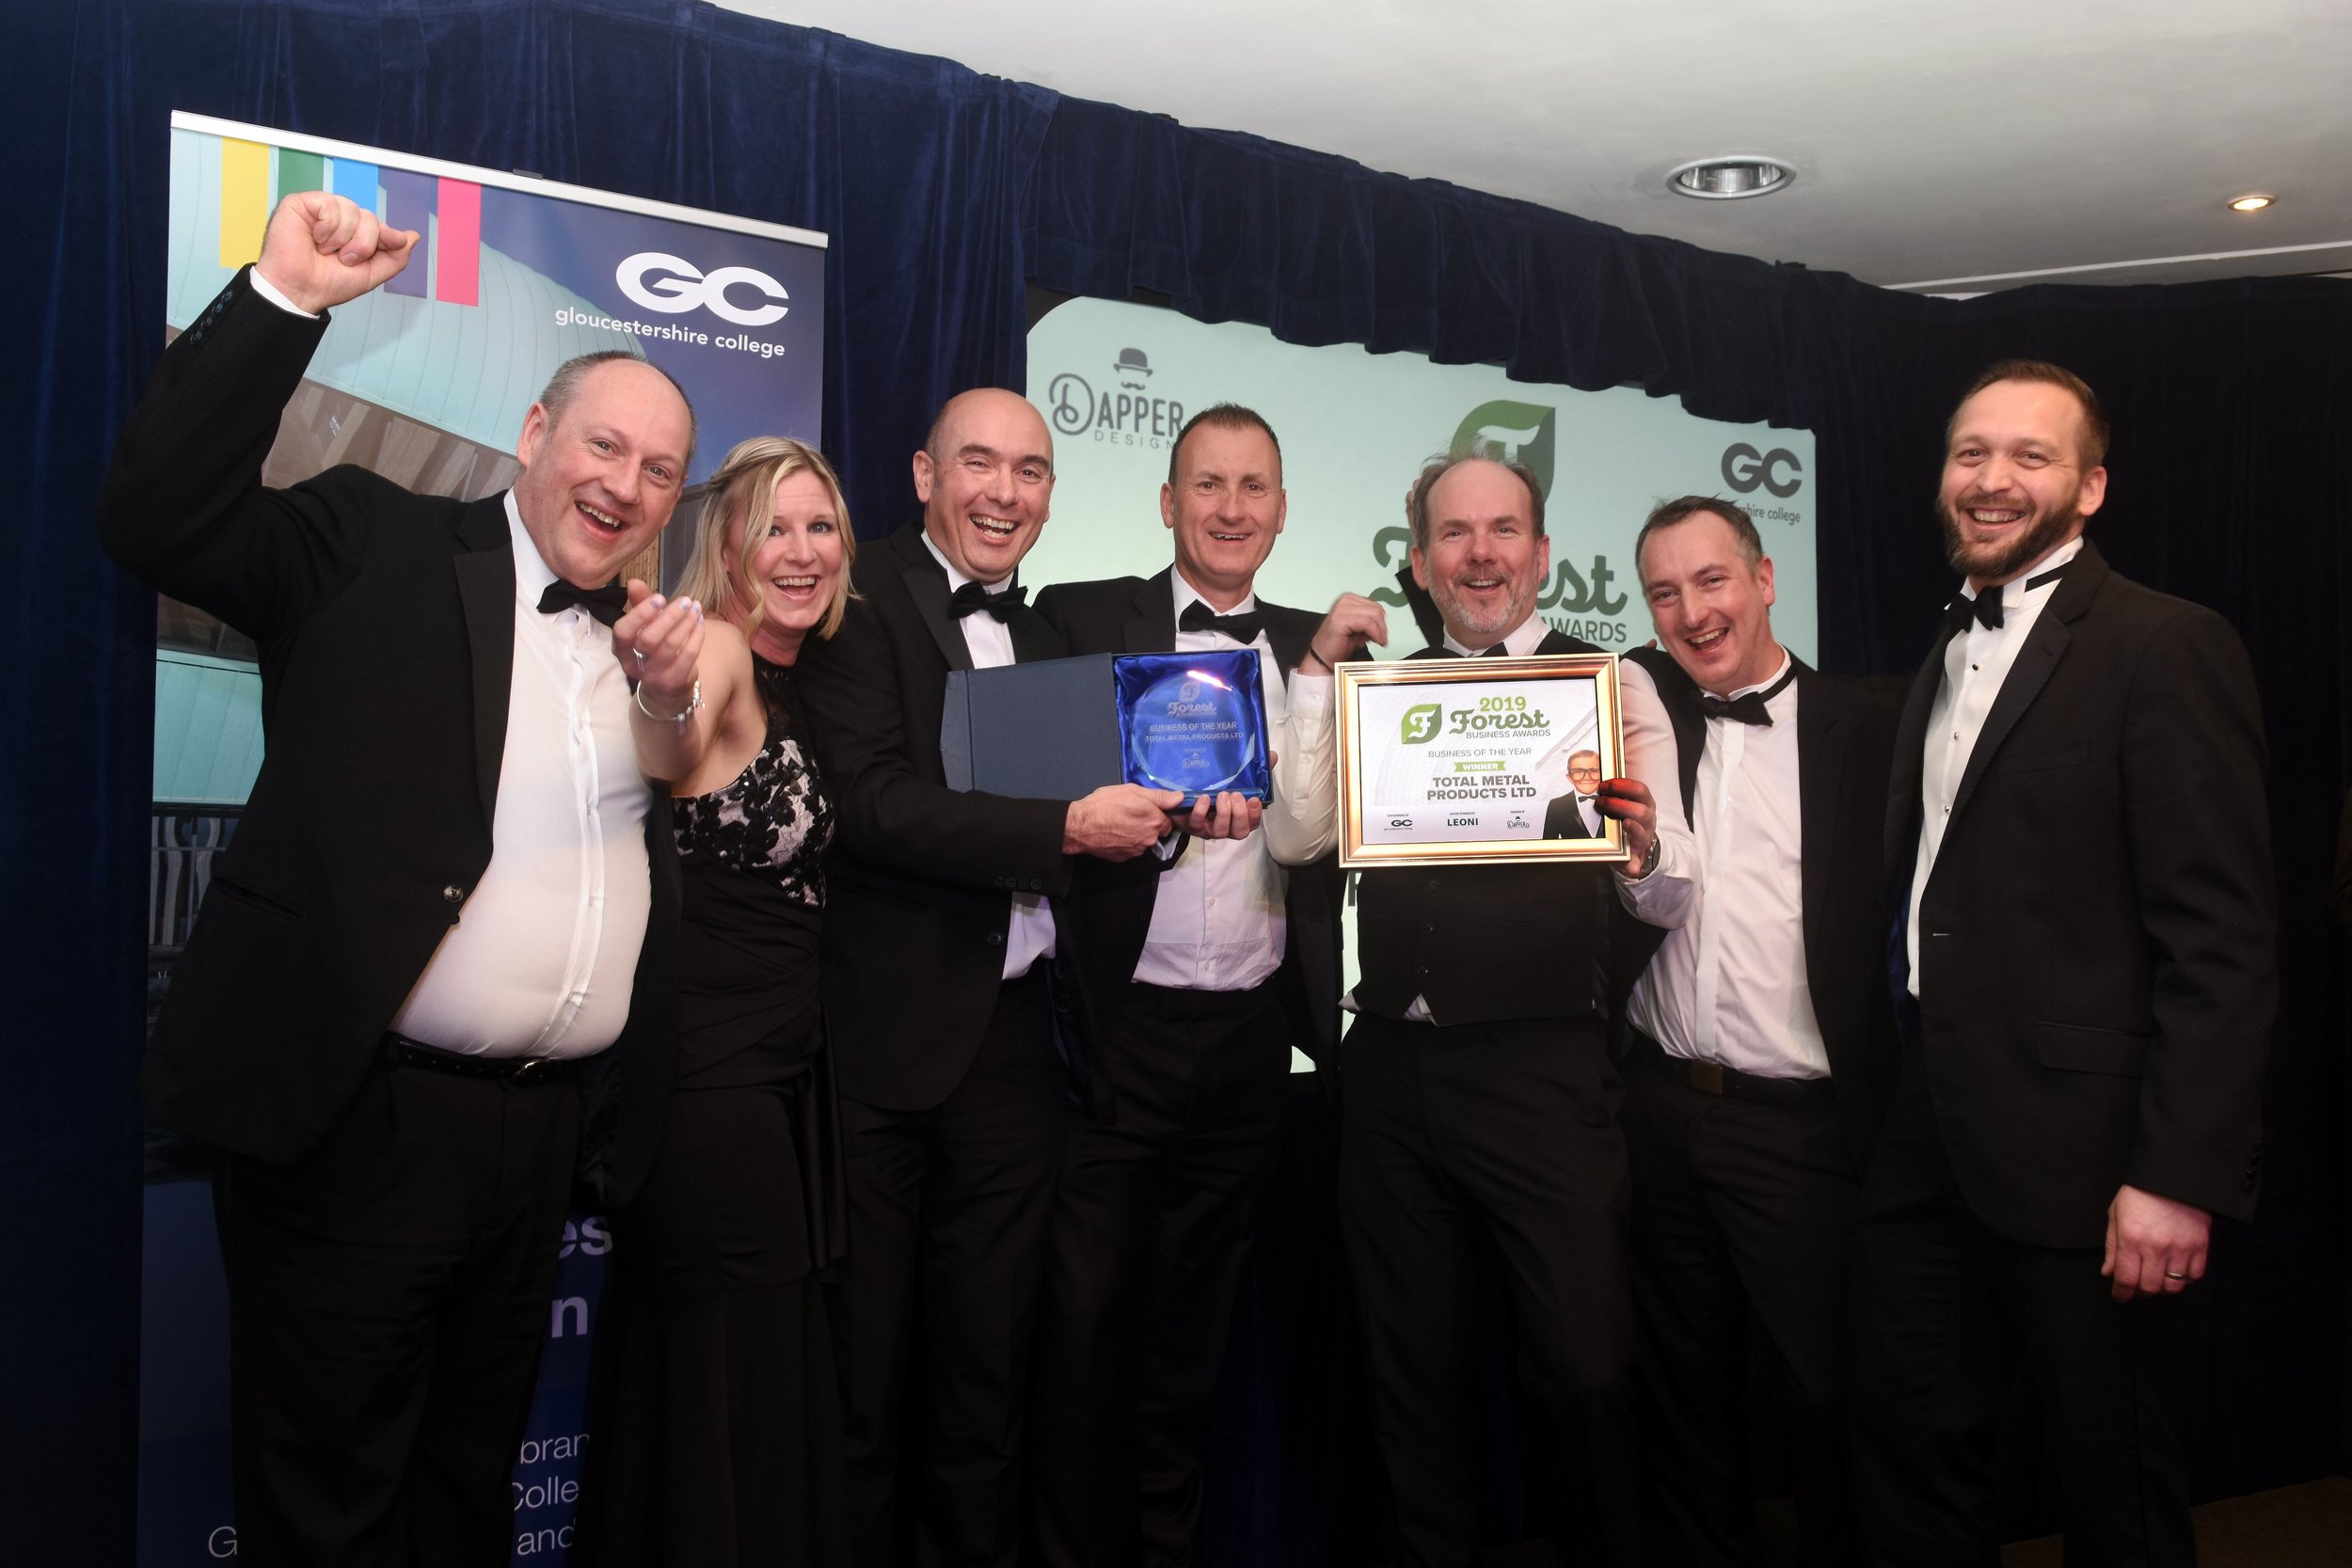 WINNERS OF THE BUSINESS OF THE YEAR AWARD - TOTAL METAL PRODUCTS LTD